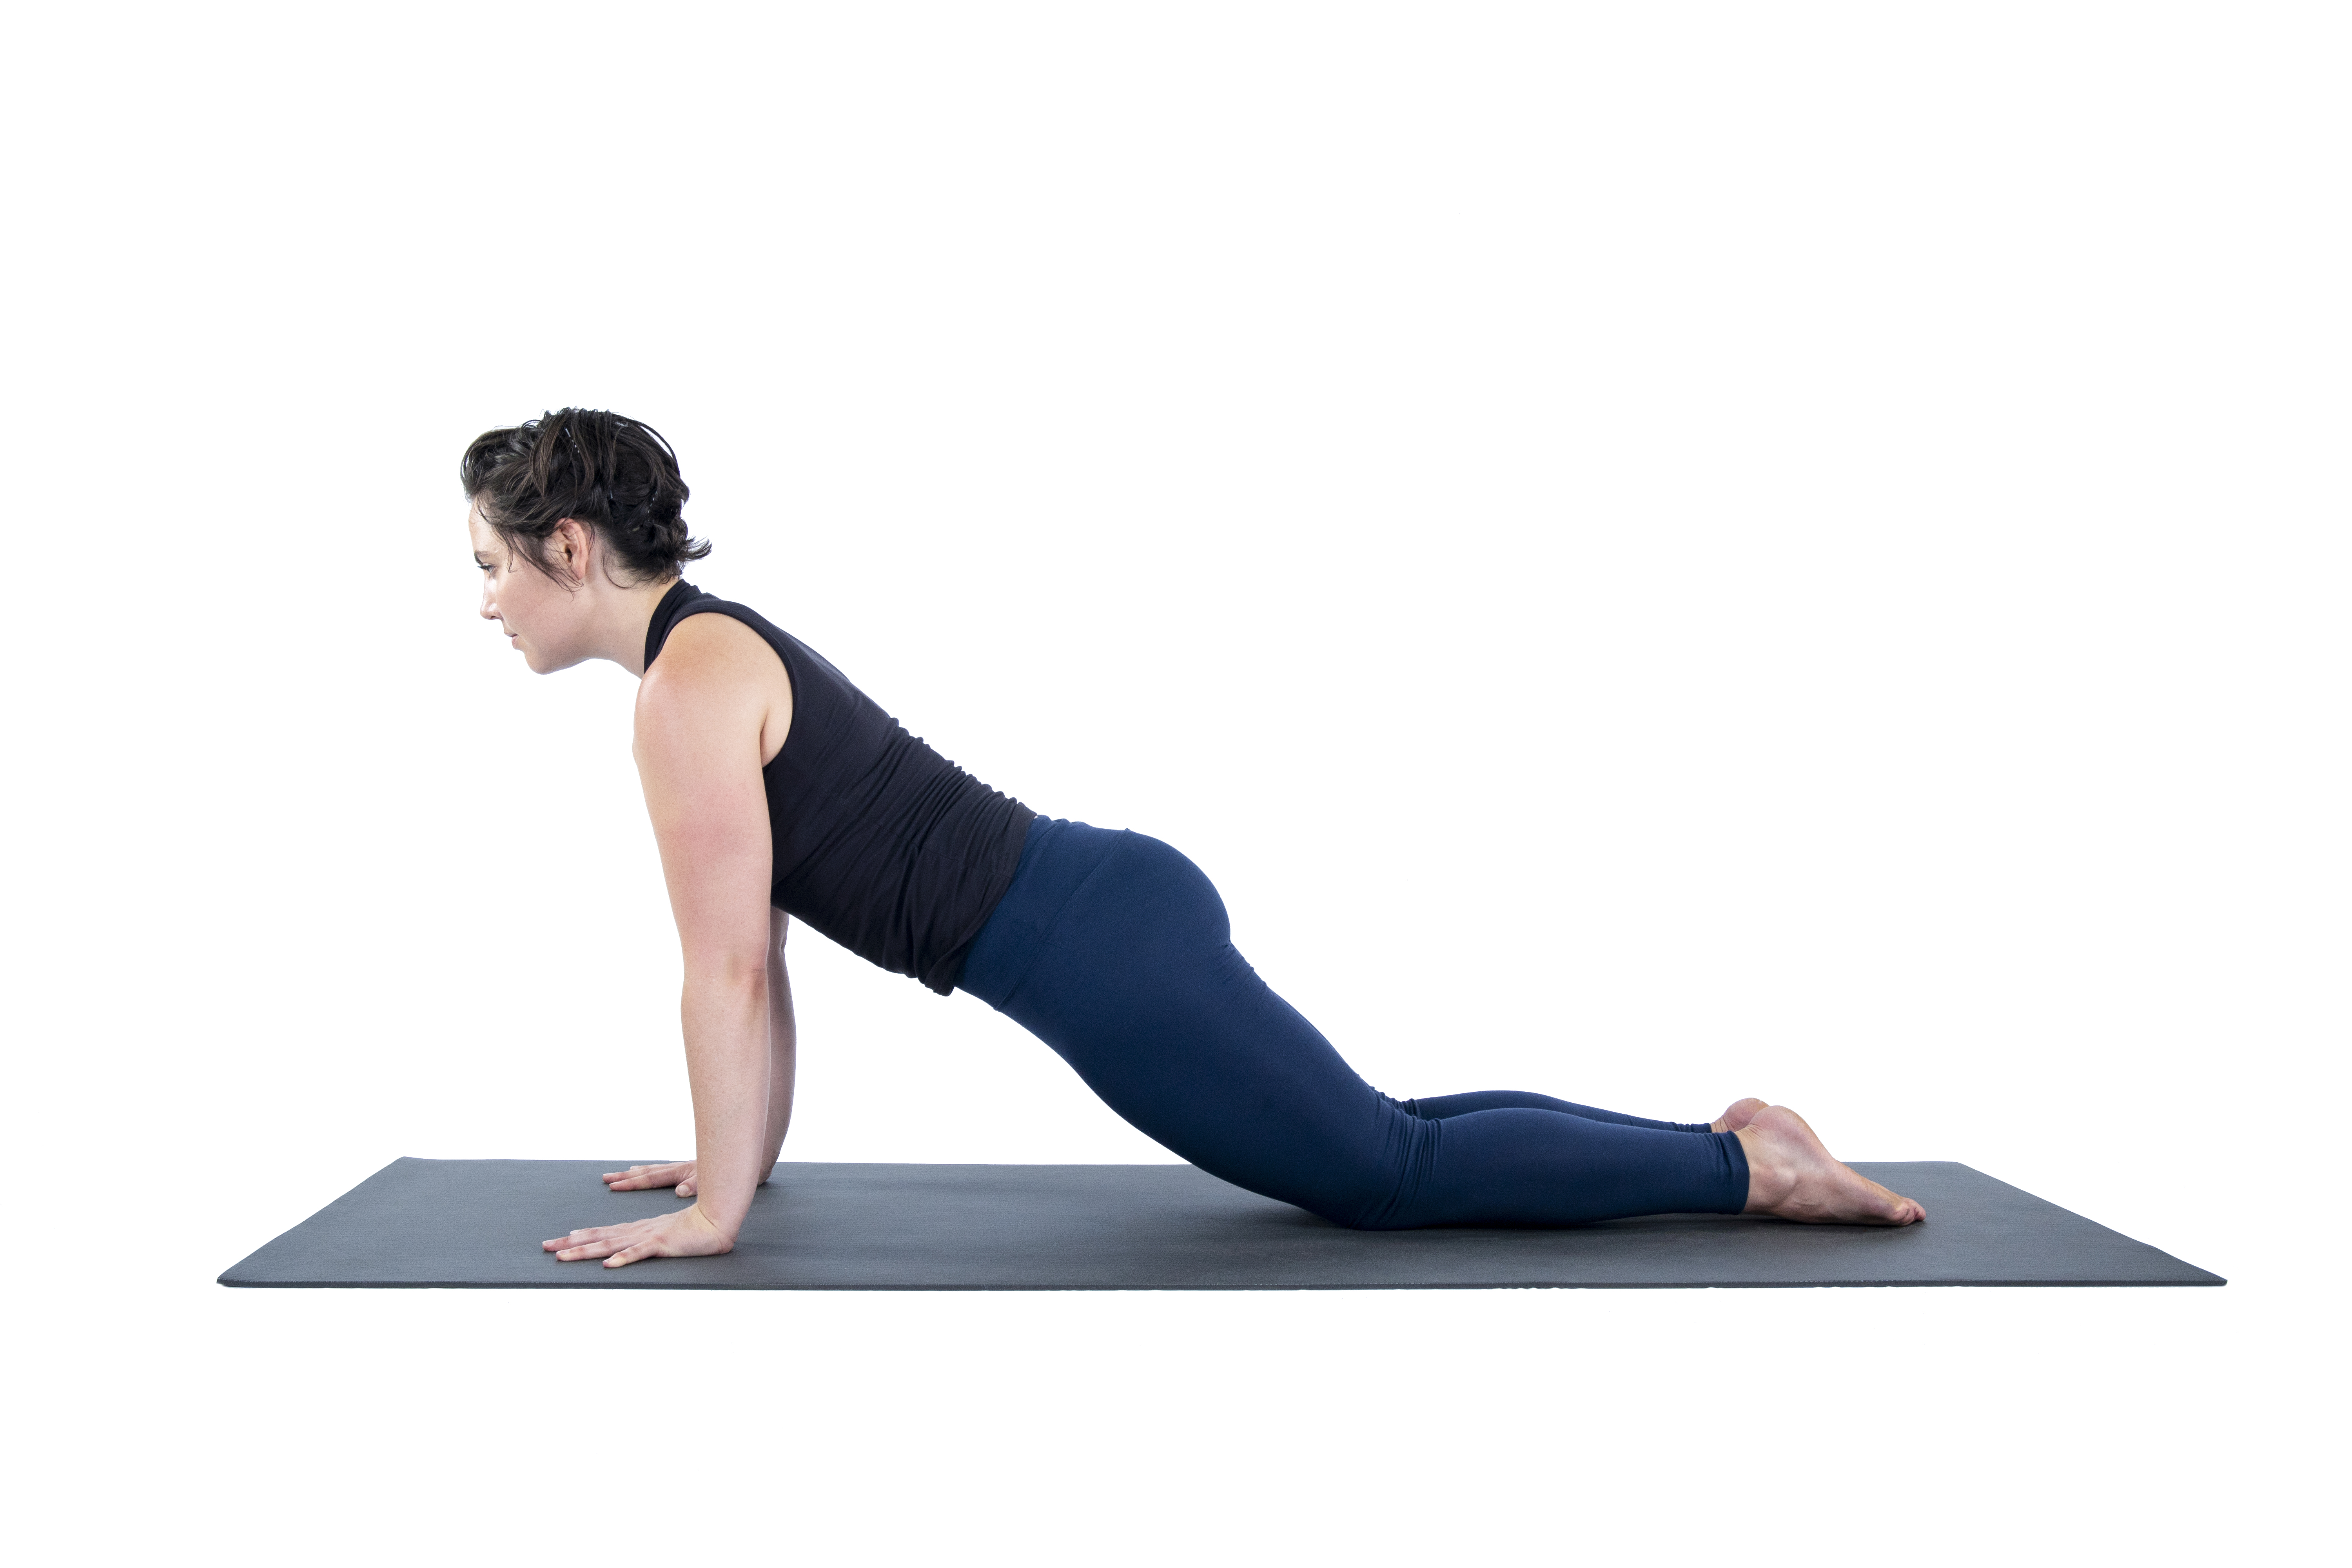 Phalakasana, Plank pose, core strengthening pose, arm strengthening pose, beginner's yoga, taking yoga practice outside,